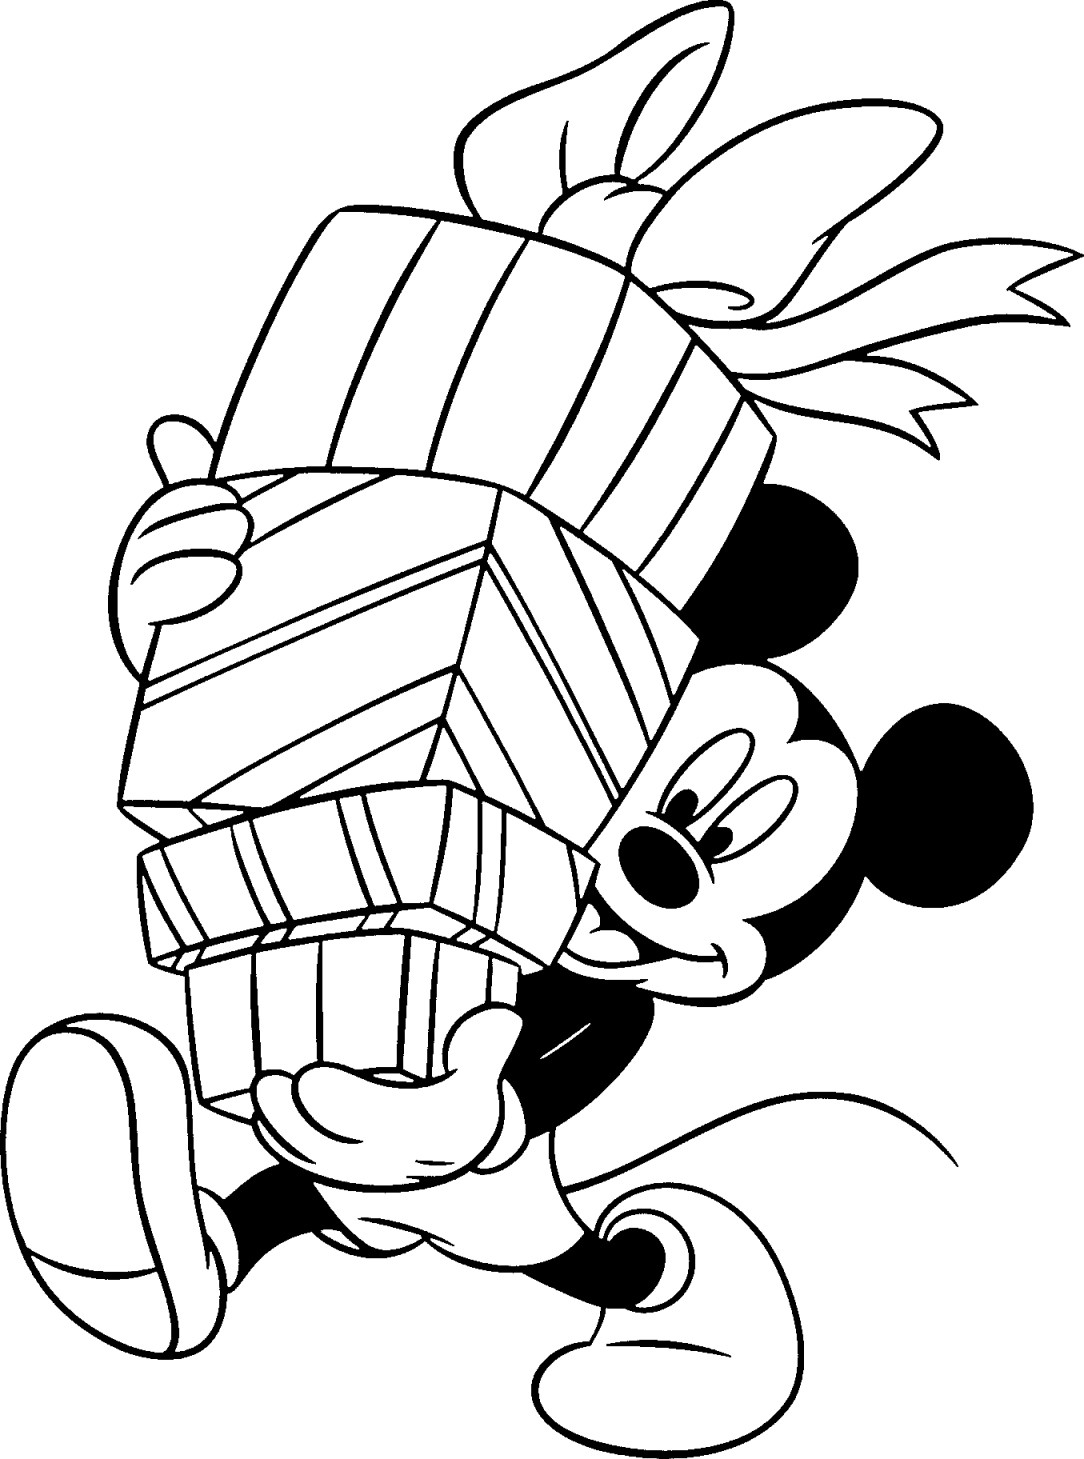 mickey christmas coloring pages 22 best images about mickey mouse on pinterest disney christmas mickey coloring pages